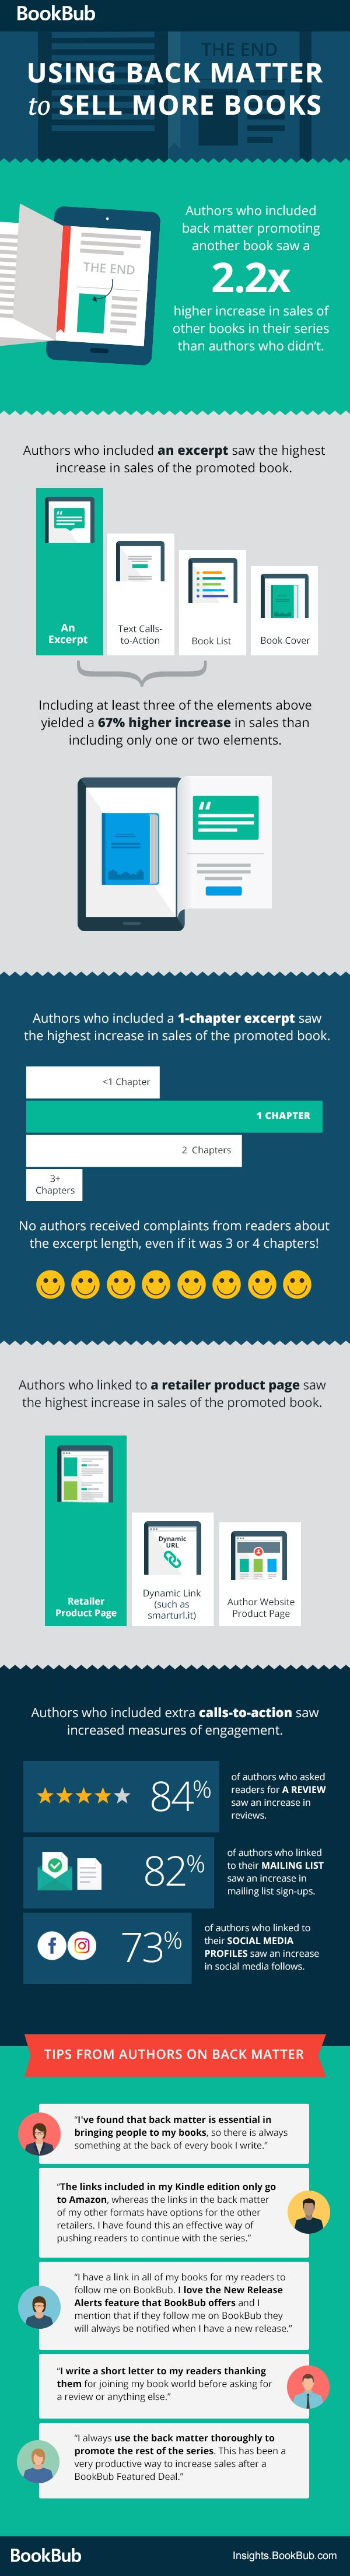 """""""An ebook's back matter — the pages that follow the end of the narrative — is prime real estate for promoting other books. We surveyed 250 authors to gather data on how back matter promotions helped increase sales of their other books, and what sort of back matter promotions worked best for them. We created the infographic below to share our findings, and hope this helps you brainstorm about how to format your own books' back matter."""""""